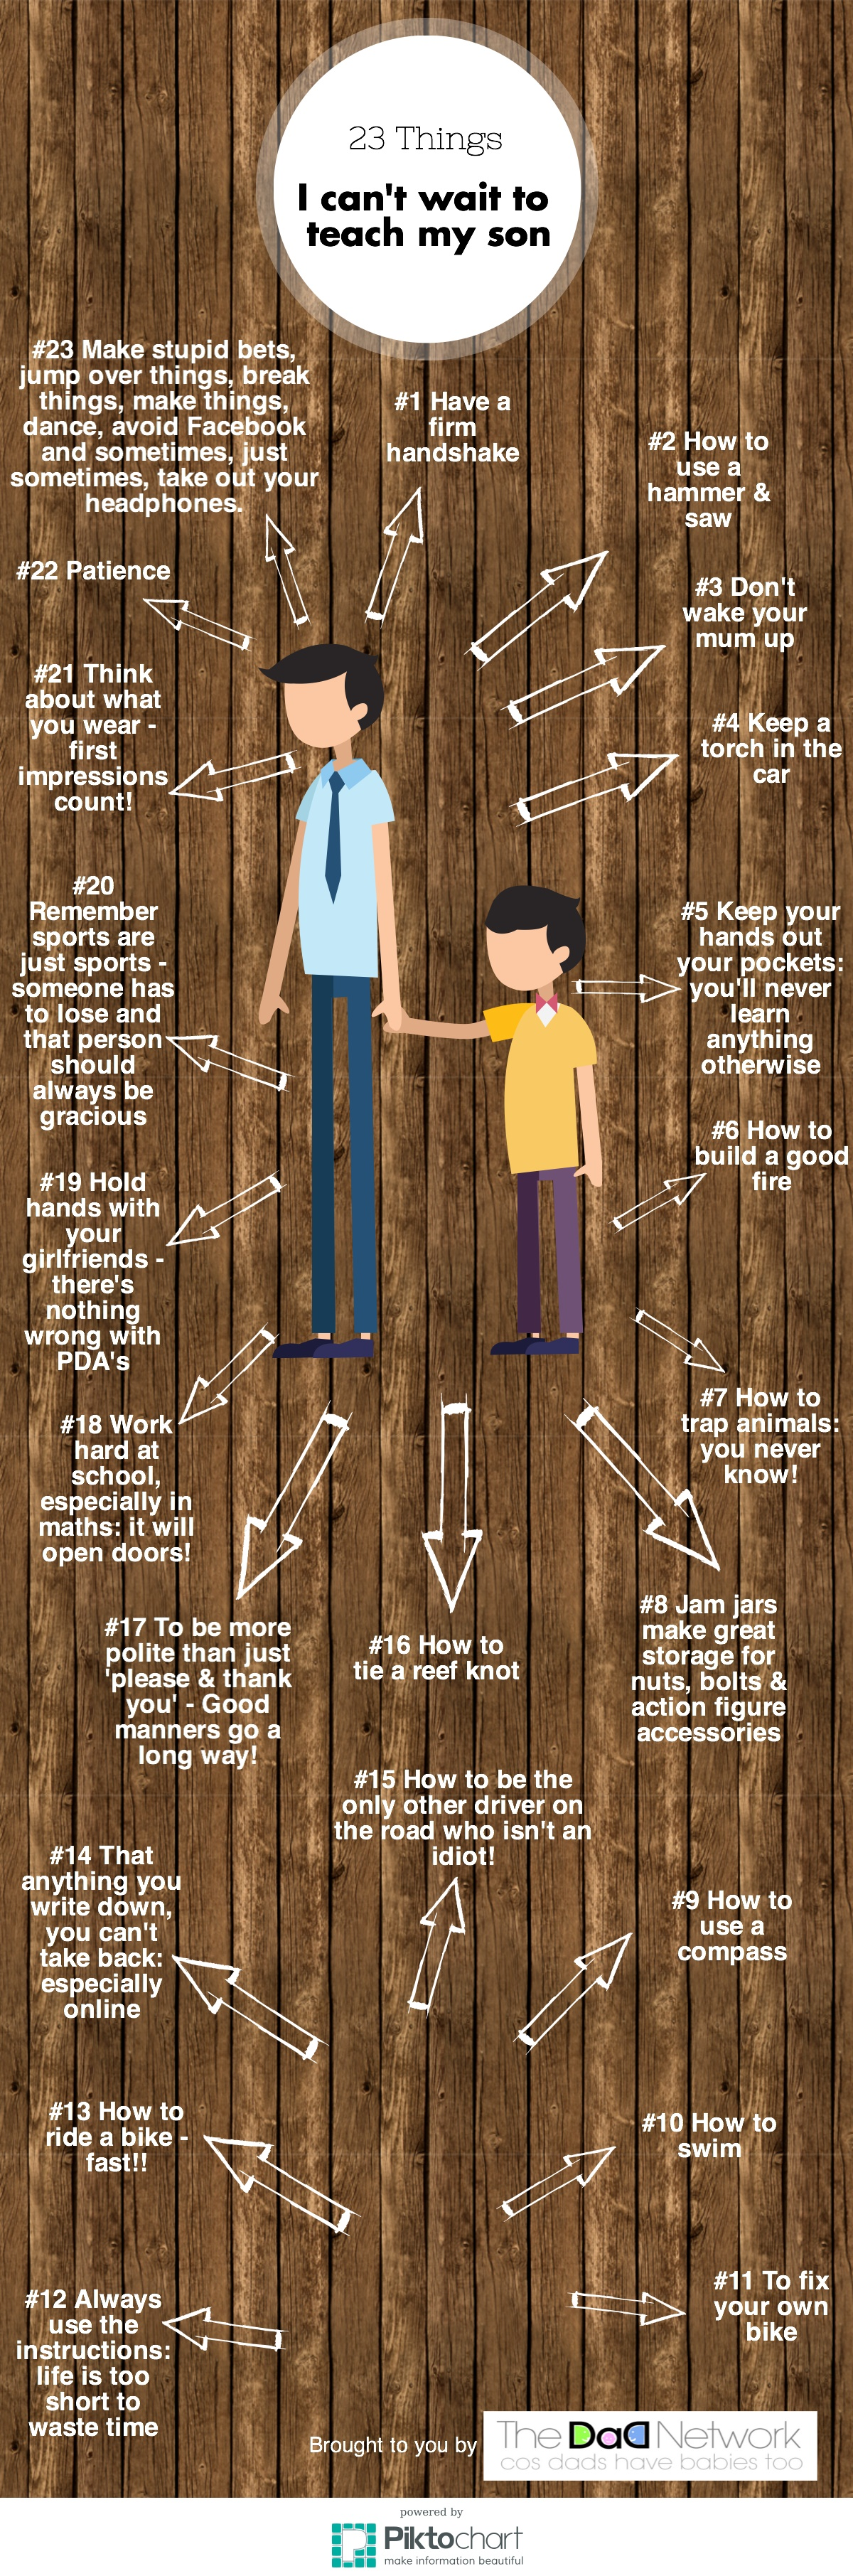 Dads: 23 Things To Teach Your Son